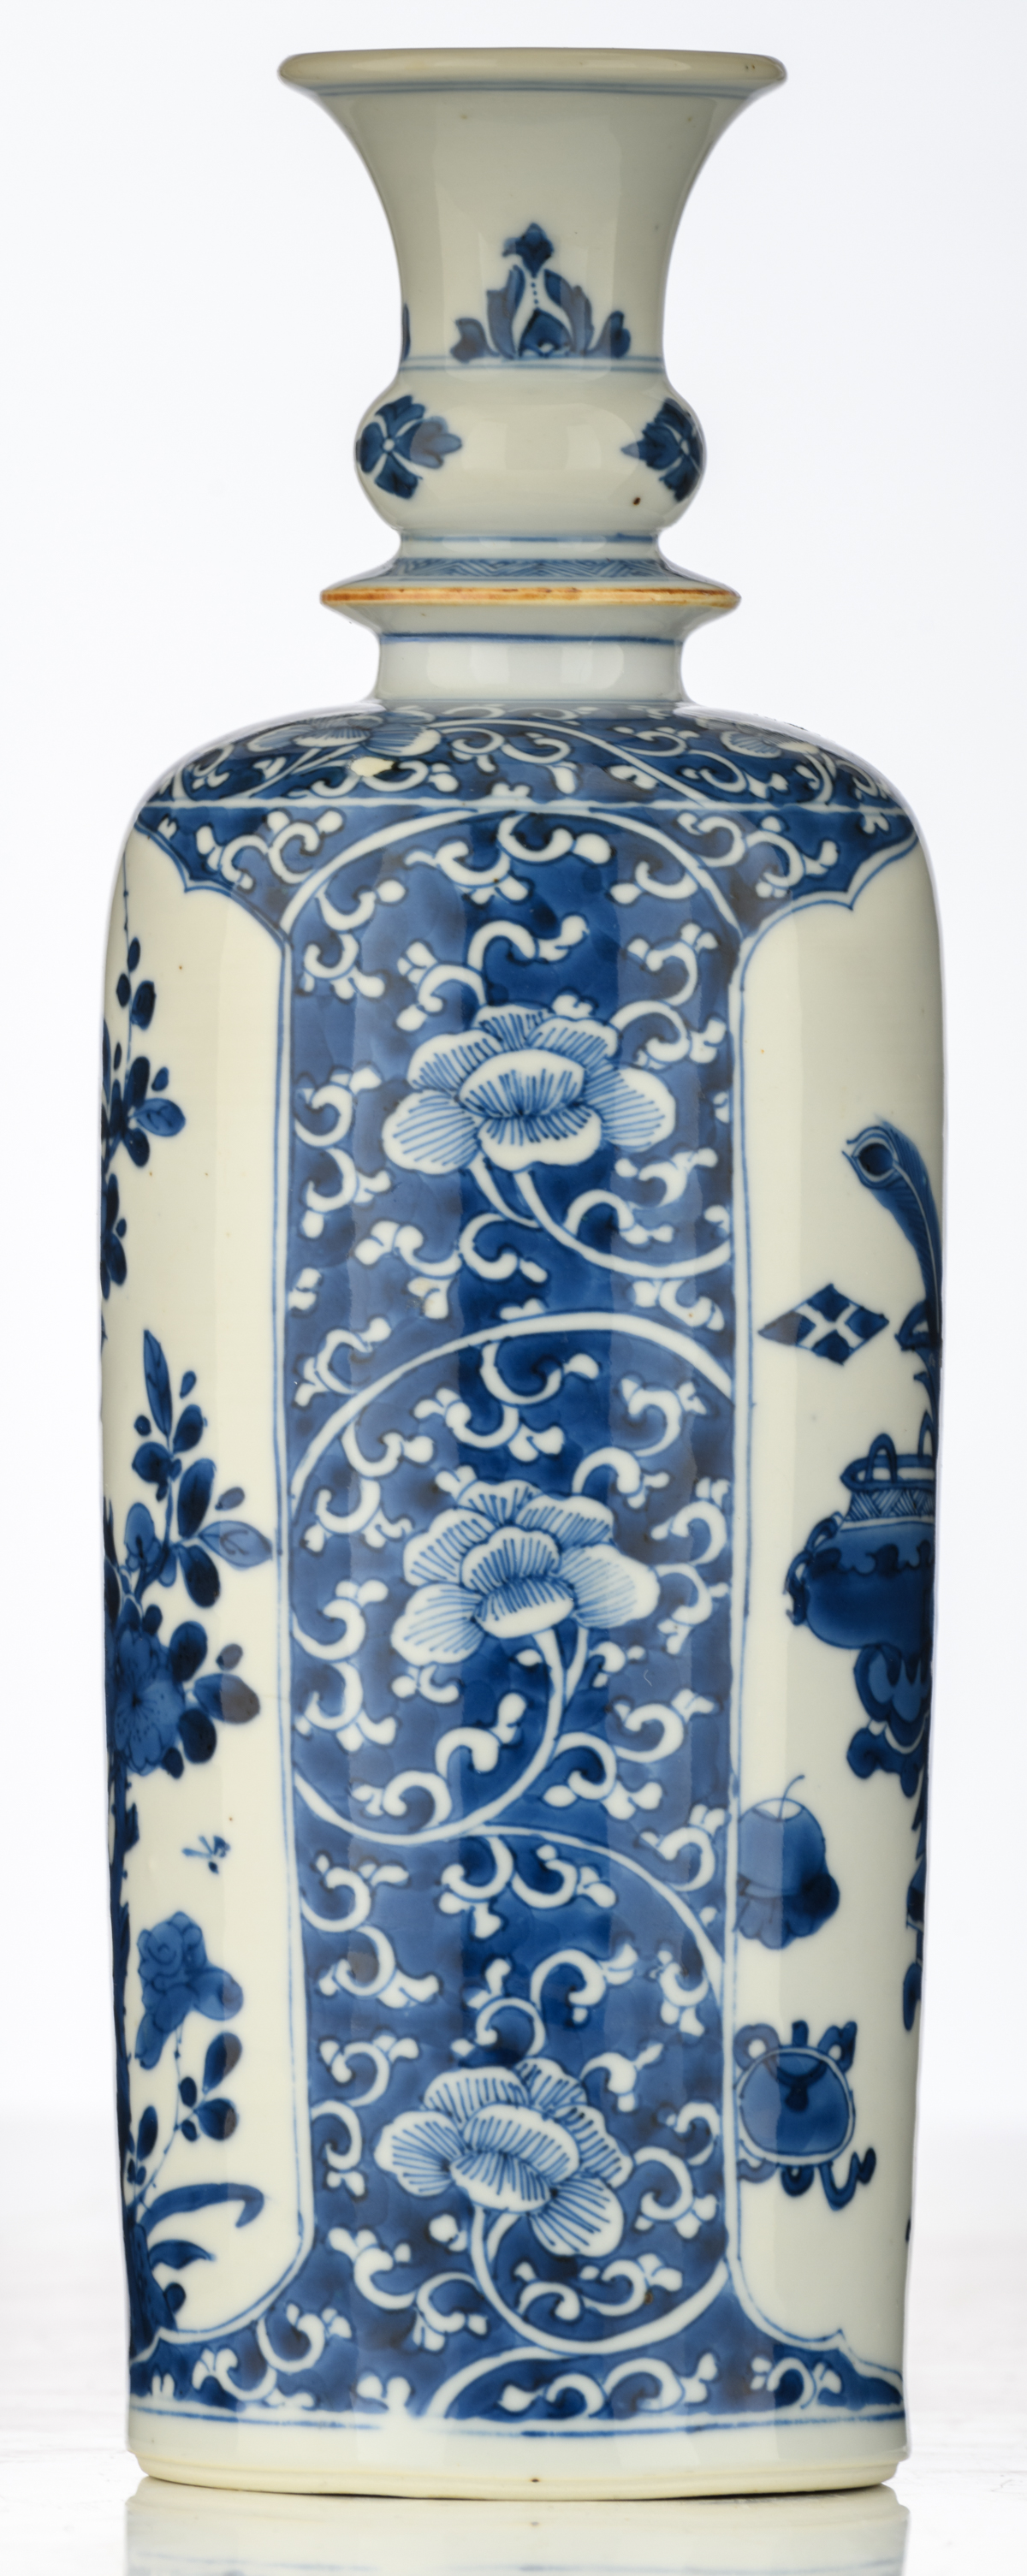 Lot 45 - A Chinese blue and white floral decorated porcelain flask, the roundels with antiquities and